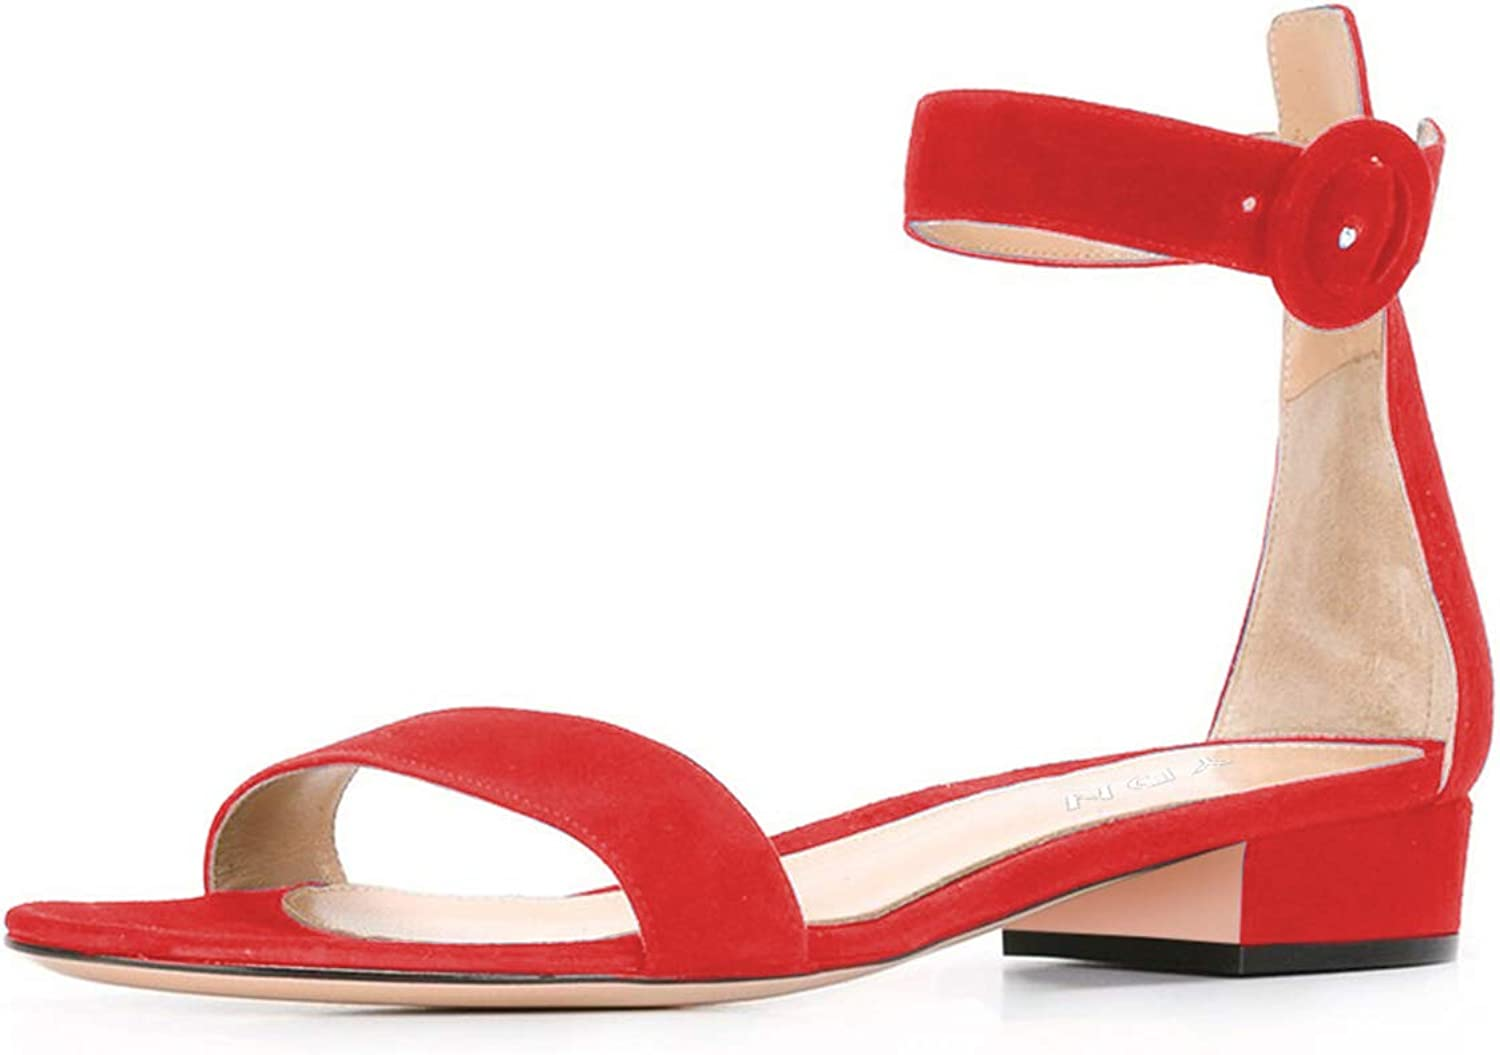 YDN Women Low Heeled Ankle Strap Sandals Open Toe Block Flat shoes with Buckle Red 8.5